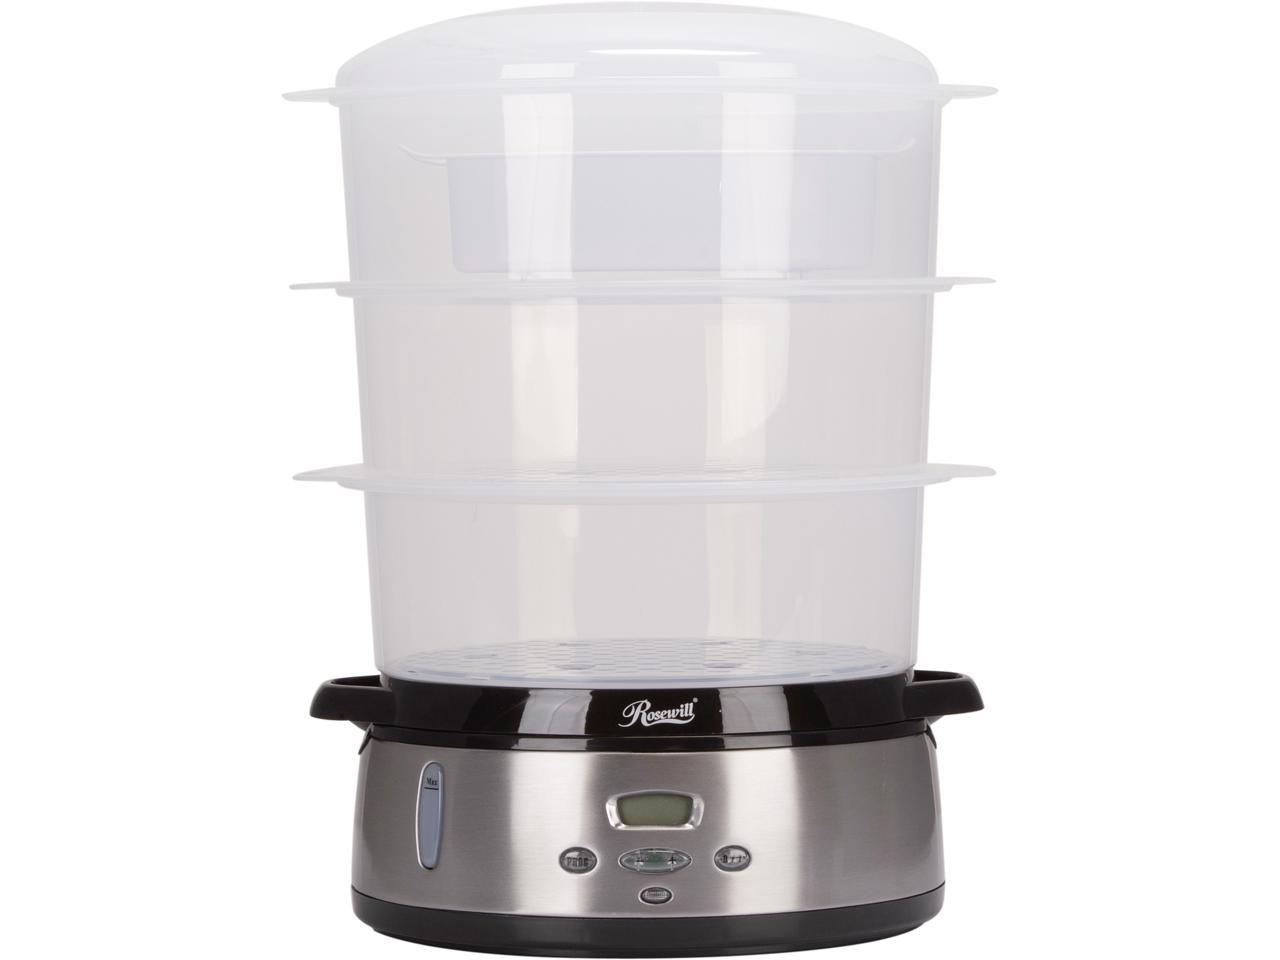 Rosewill 3-Tier Digital Food Steamer 9.5-Quart (9L), RHST-20001